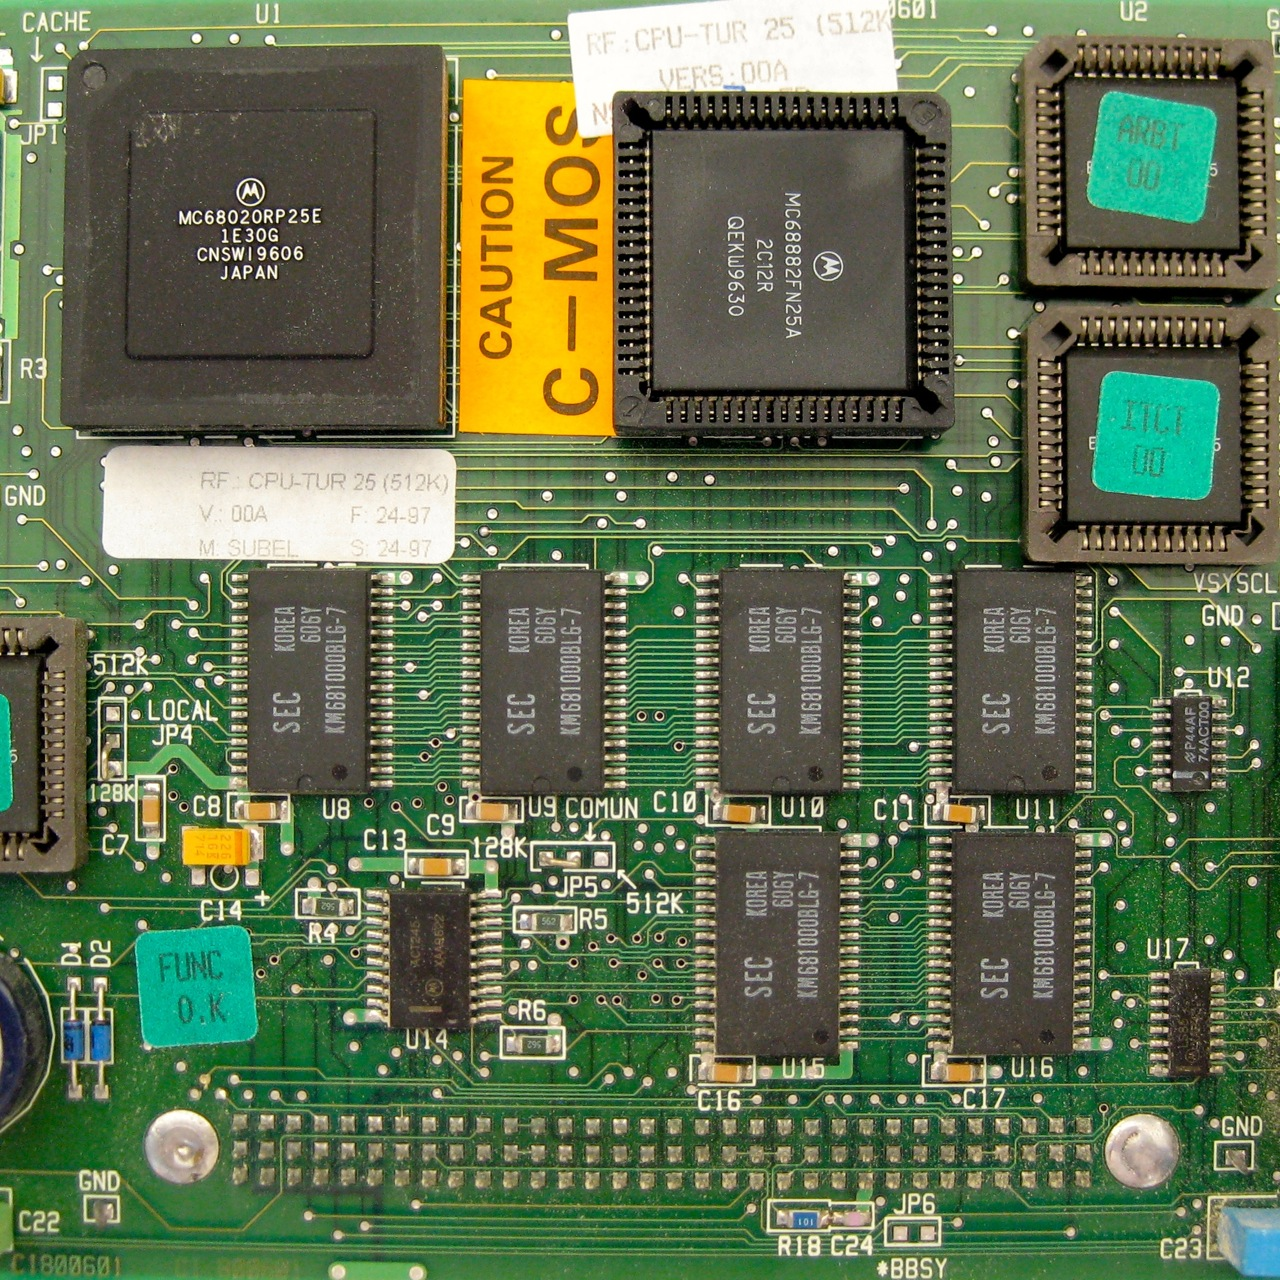 Fagor CPU-TUR 25 (512K) CPU turbo board 03